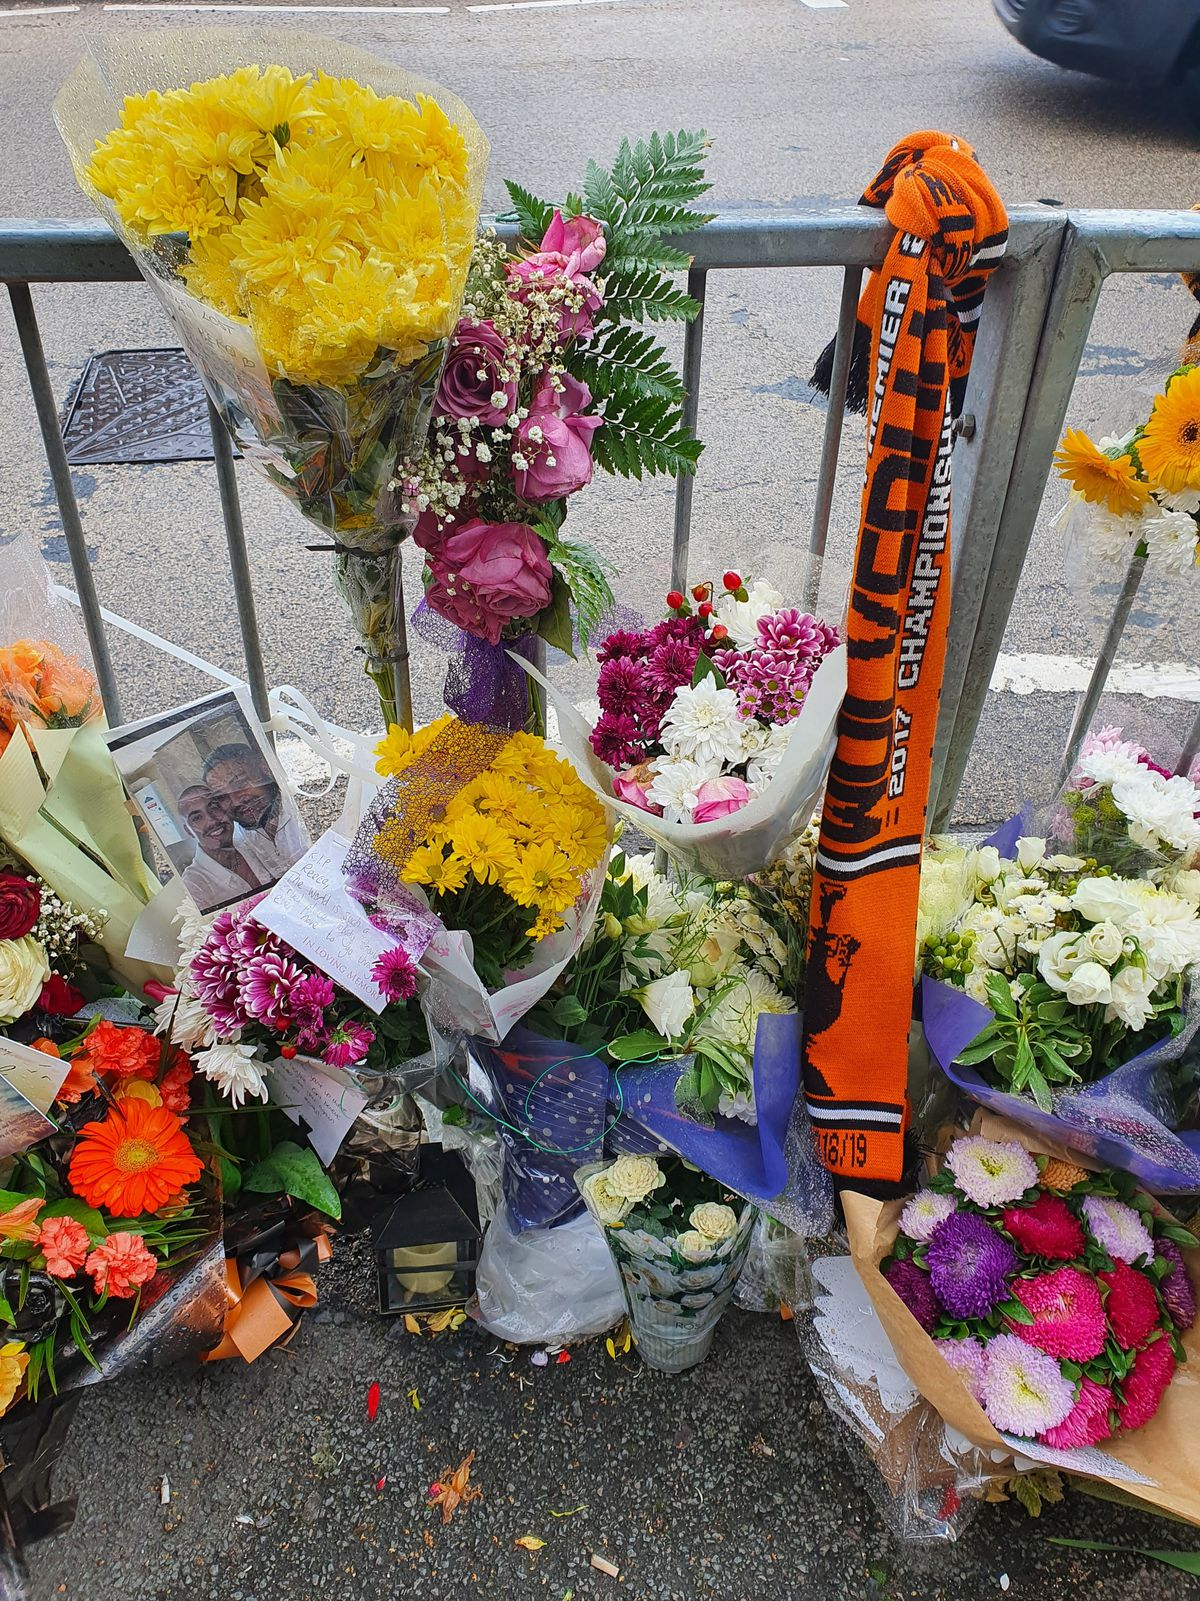 Wolves scarves are among the tributes left for Reece